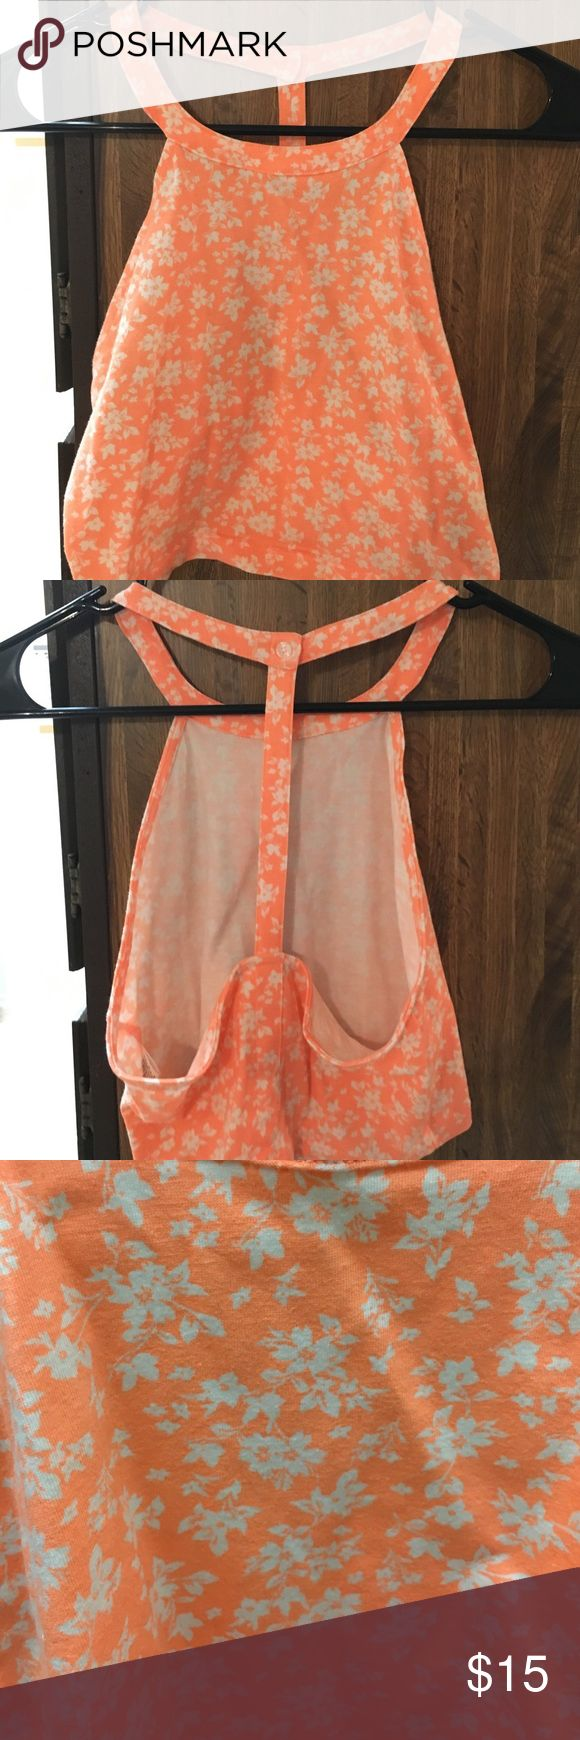 Bright neon top floral top Hard to tell in the photo but it is a bright neon pinky orange Charlotte Russe Tops Tank Tops